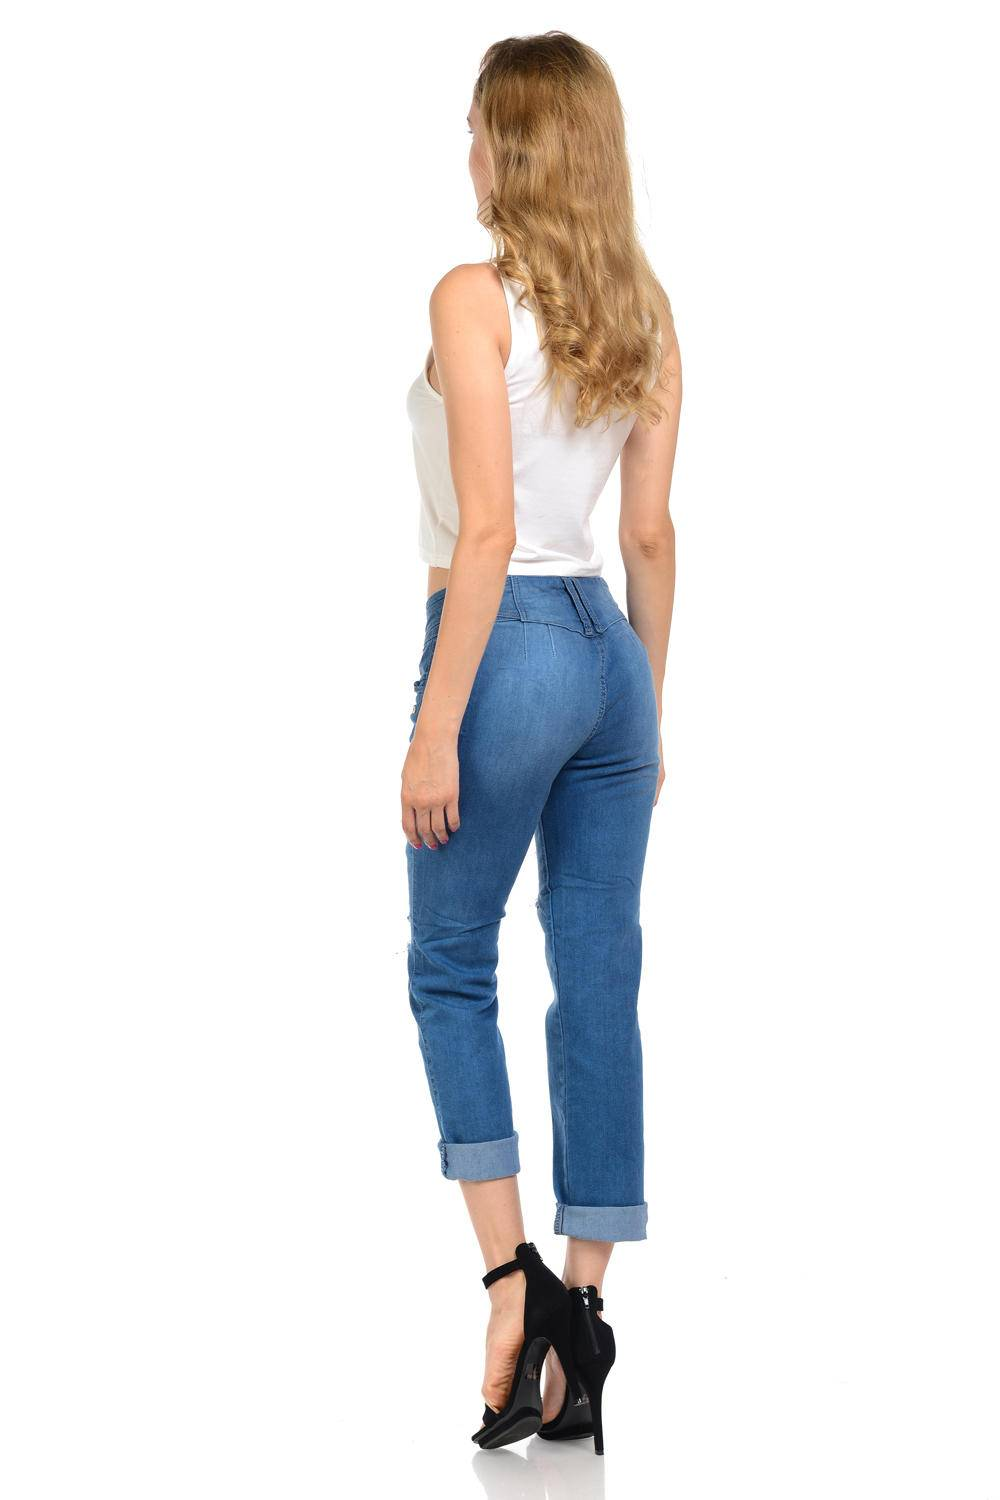 Sweet Look Premium Edition Women's Jeans (Sizing: 23-31 ...